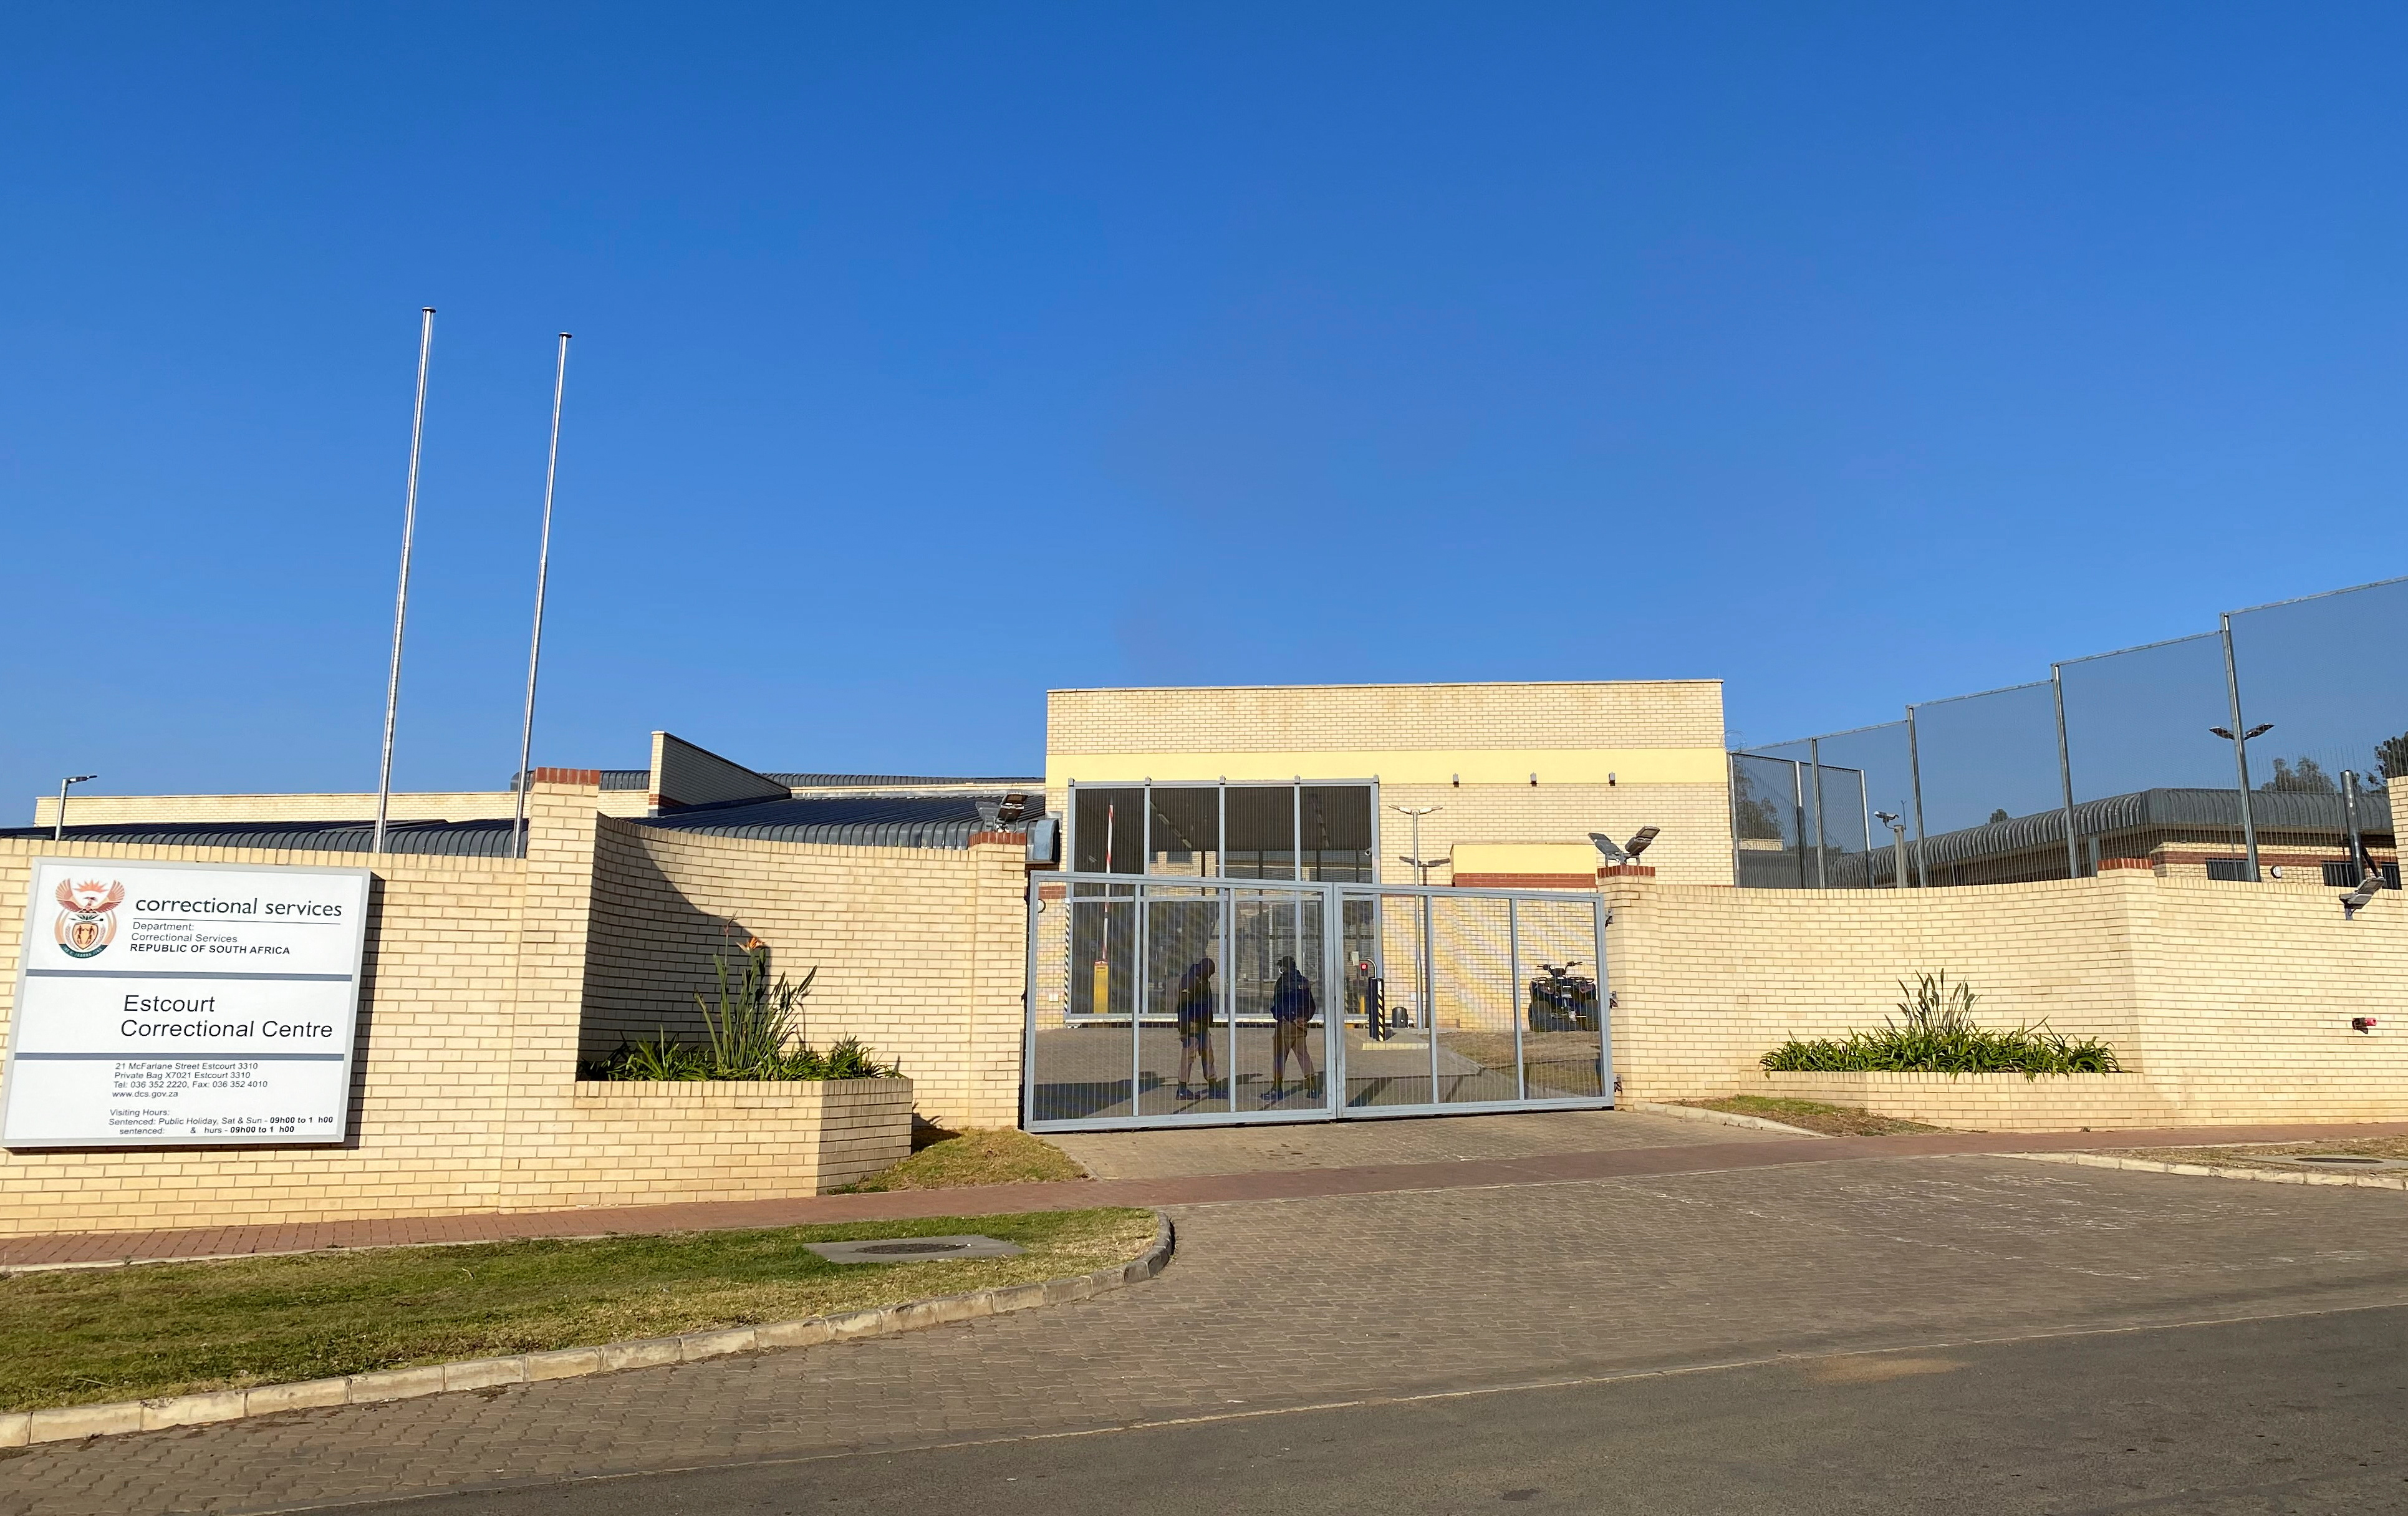 A general view of Estcourt Correctional Centre, where South Africa's former president Jacob Zuma is being held after he turned himself in to begin a 15-month sentence for contempt of court, in Estcourt, South Africa, July 8, 2021. REUTERS/Siyabonga Sishi